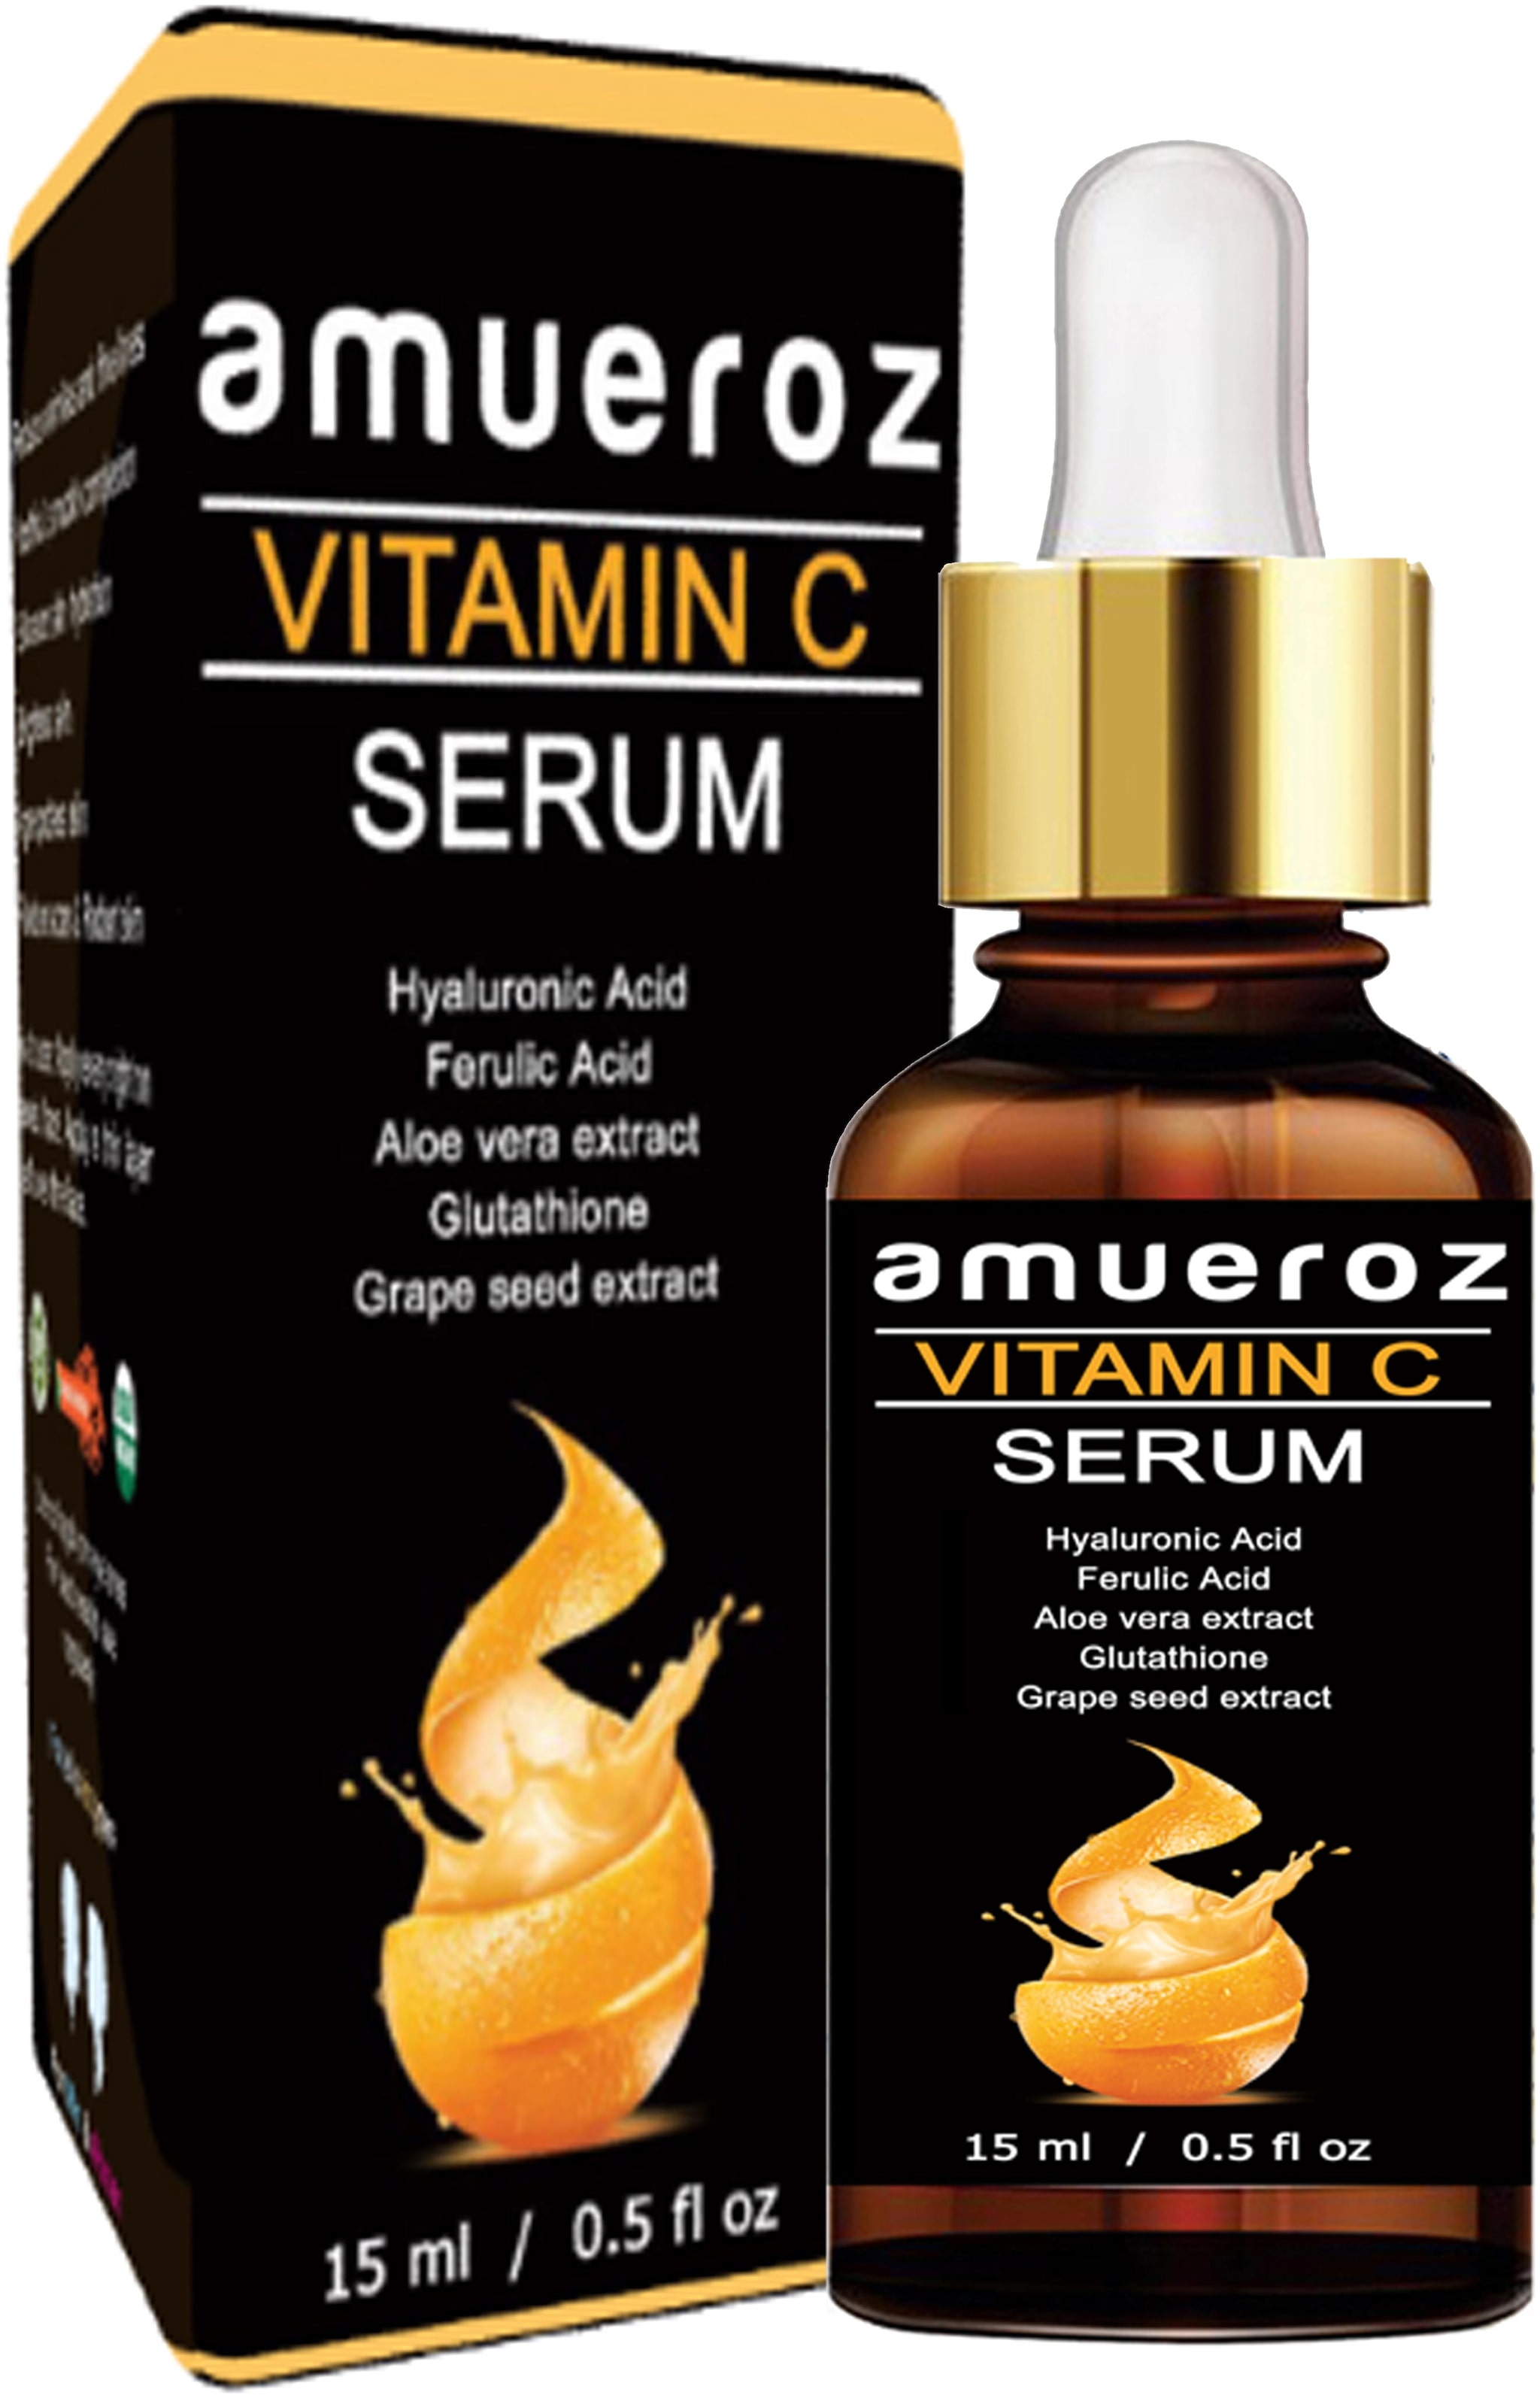 Amueroz Vitamin C Face Serum/ Skin Whitening/ Wrinkle Reducer/ Anti Aging & Anti Acne/ Face Pigmentation & Oily Skin 15 ml ( Pack of 1 )